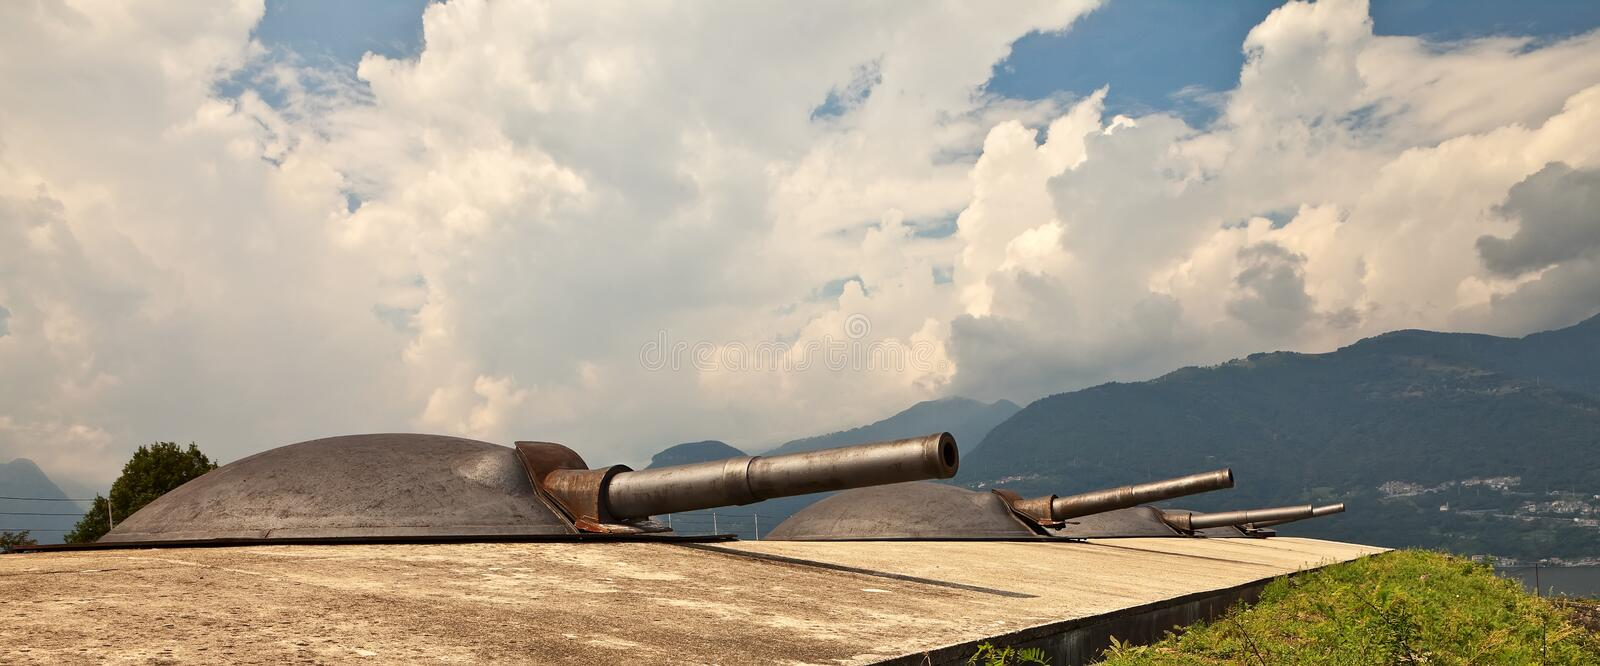 Download Artillery Turrets. Stock Photography - Image: 16923912